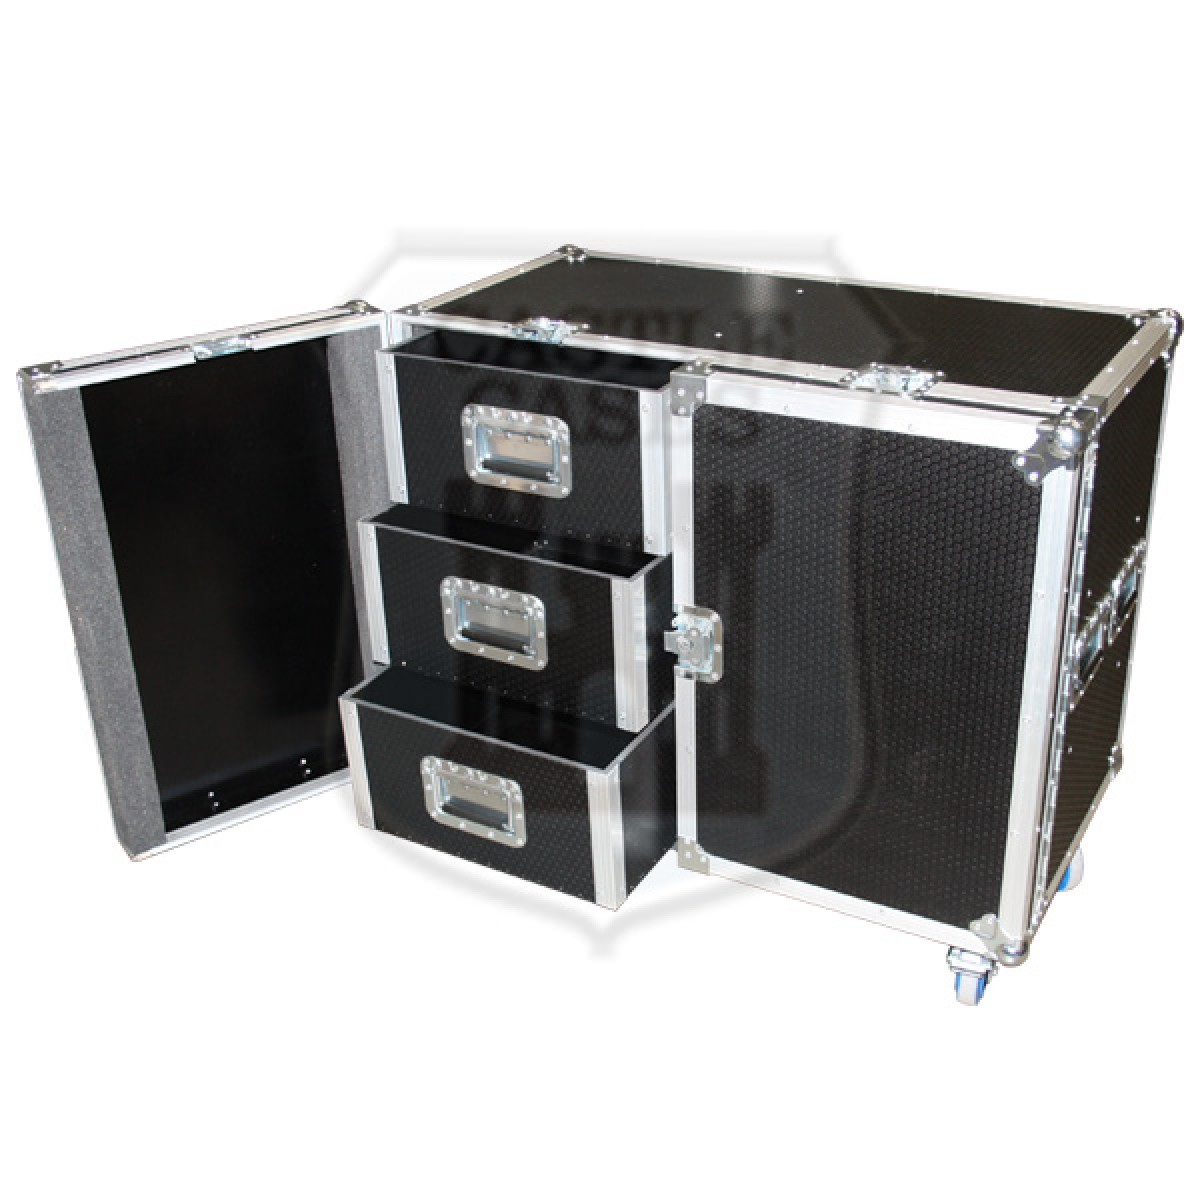 6 Drawer Tech with Double Hinged front Flightcase